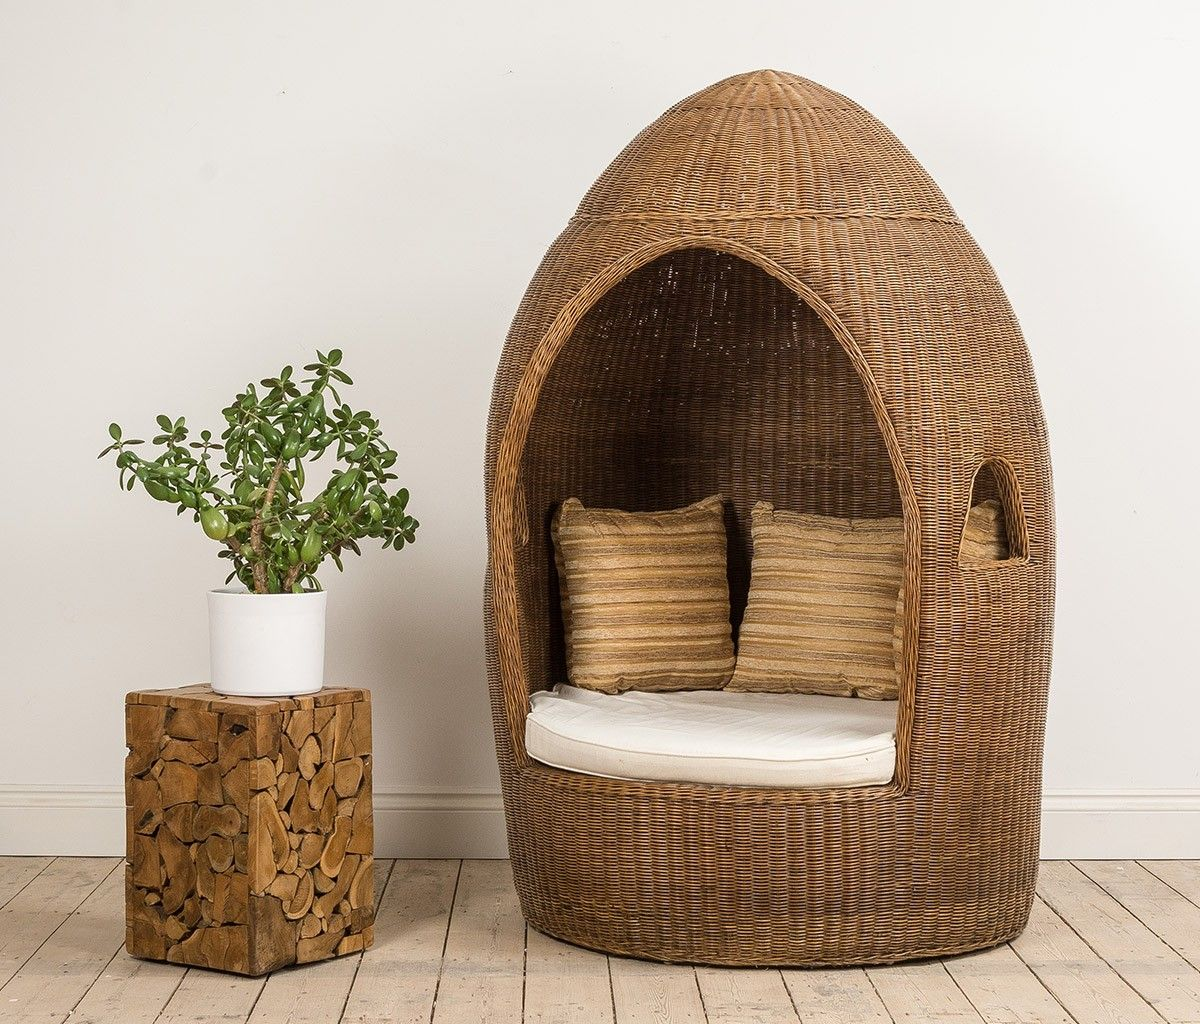 Rattan Chairs  Contemporary Rattan Furniture  Rattan Egg